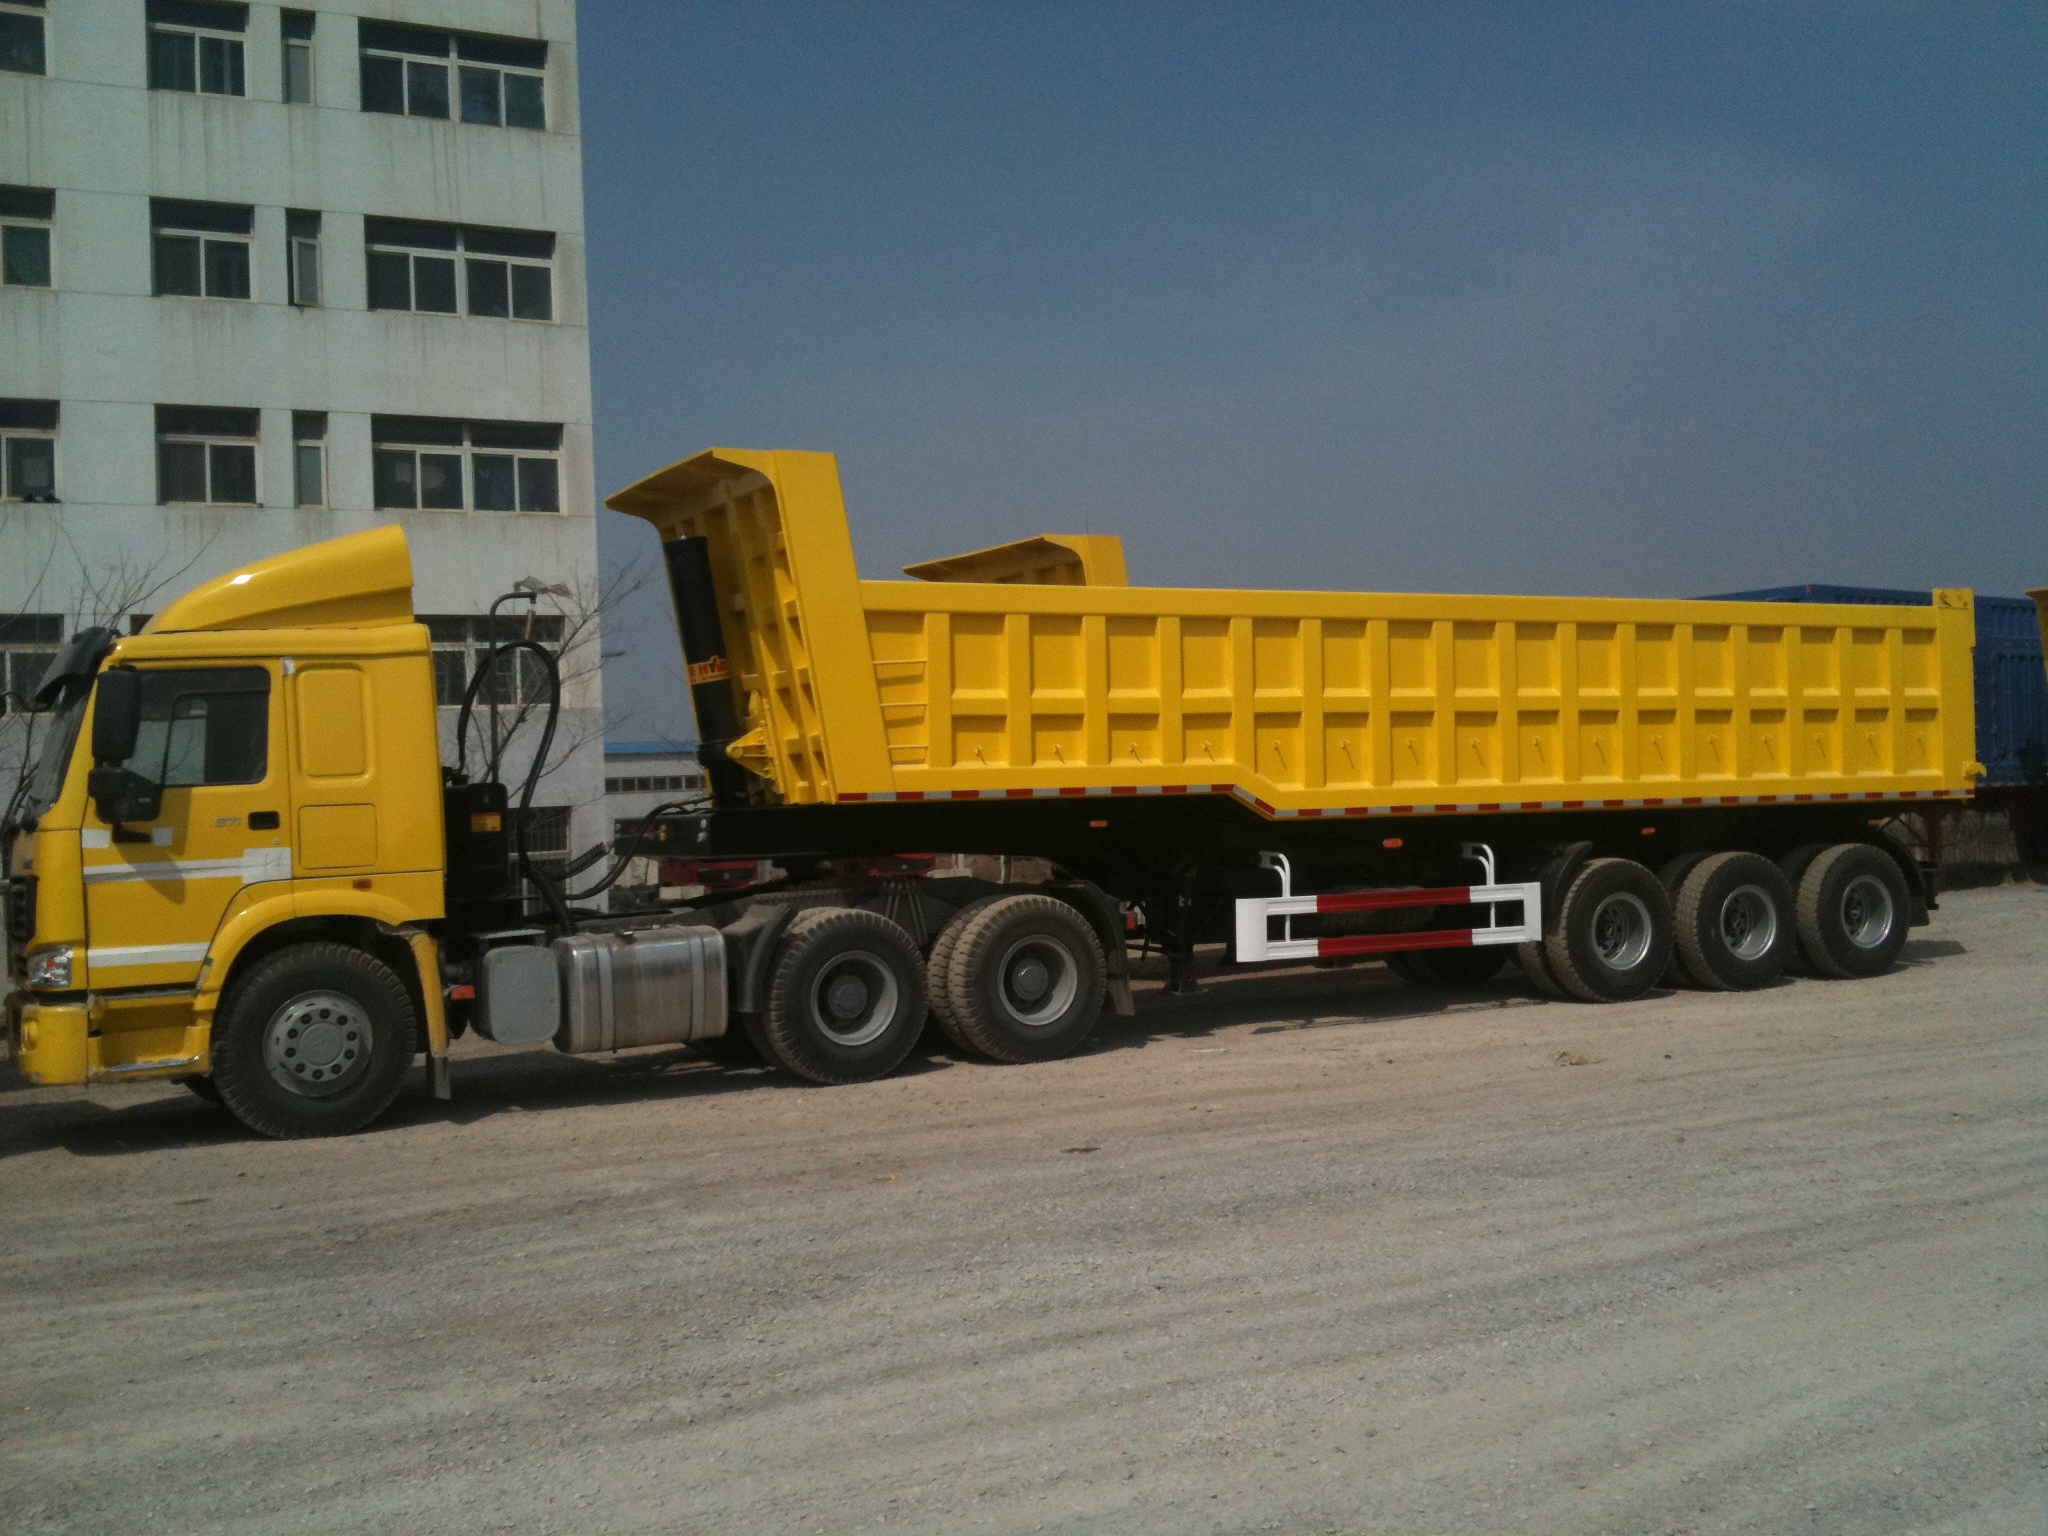 42 cbm Dump Semi-trailer with 3 BPW axles and hydraulic rear Discharge system for 80 Tons